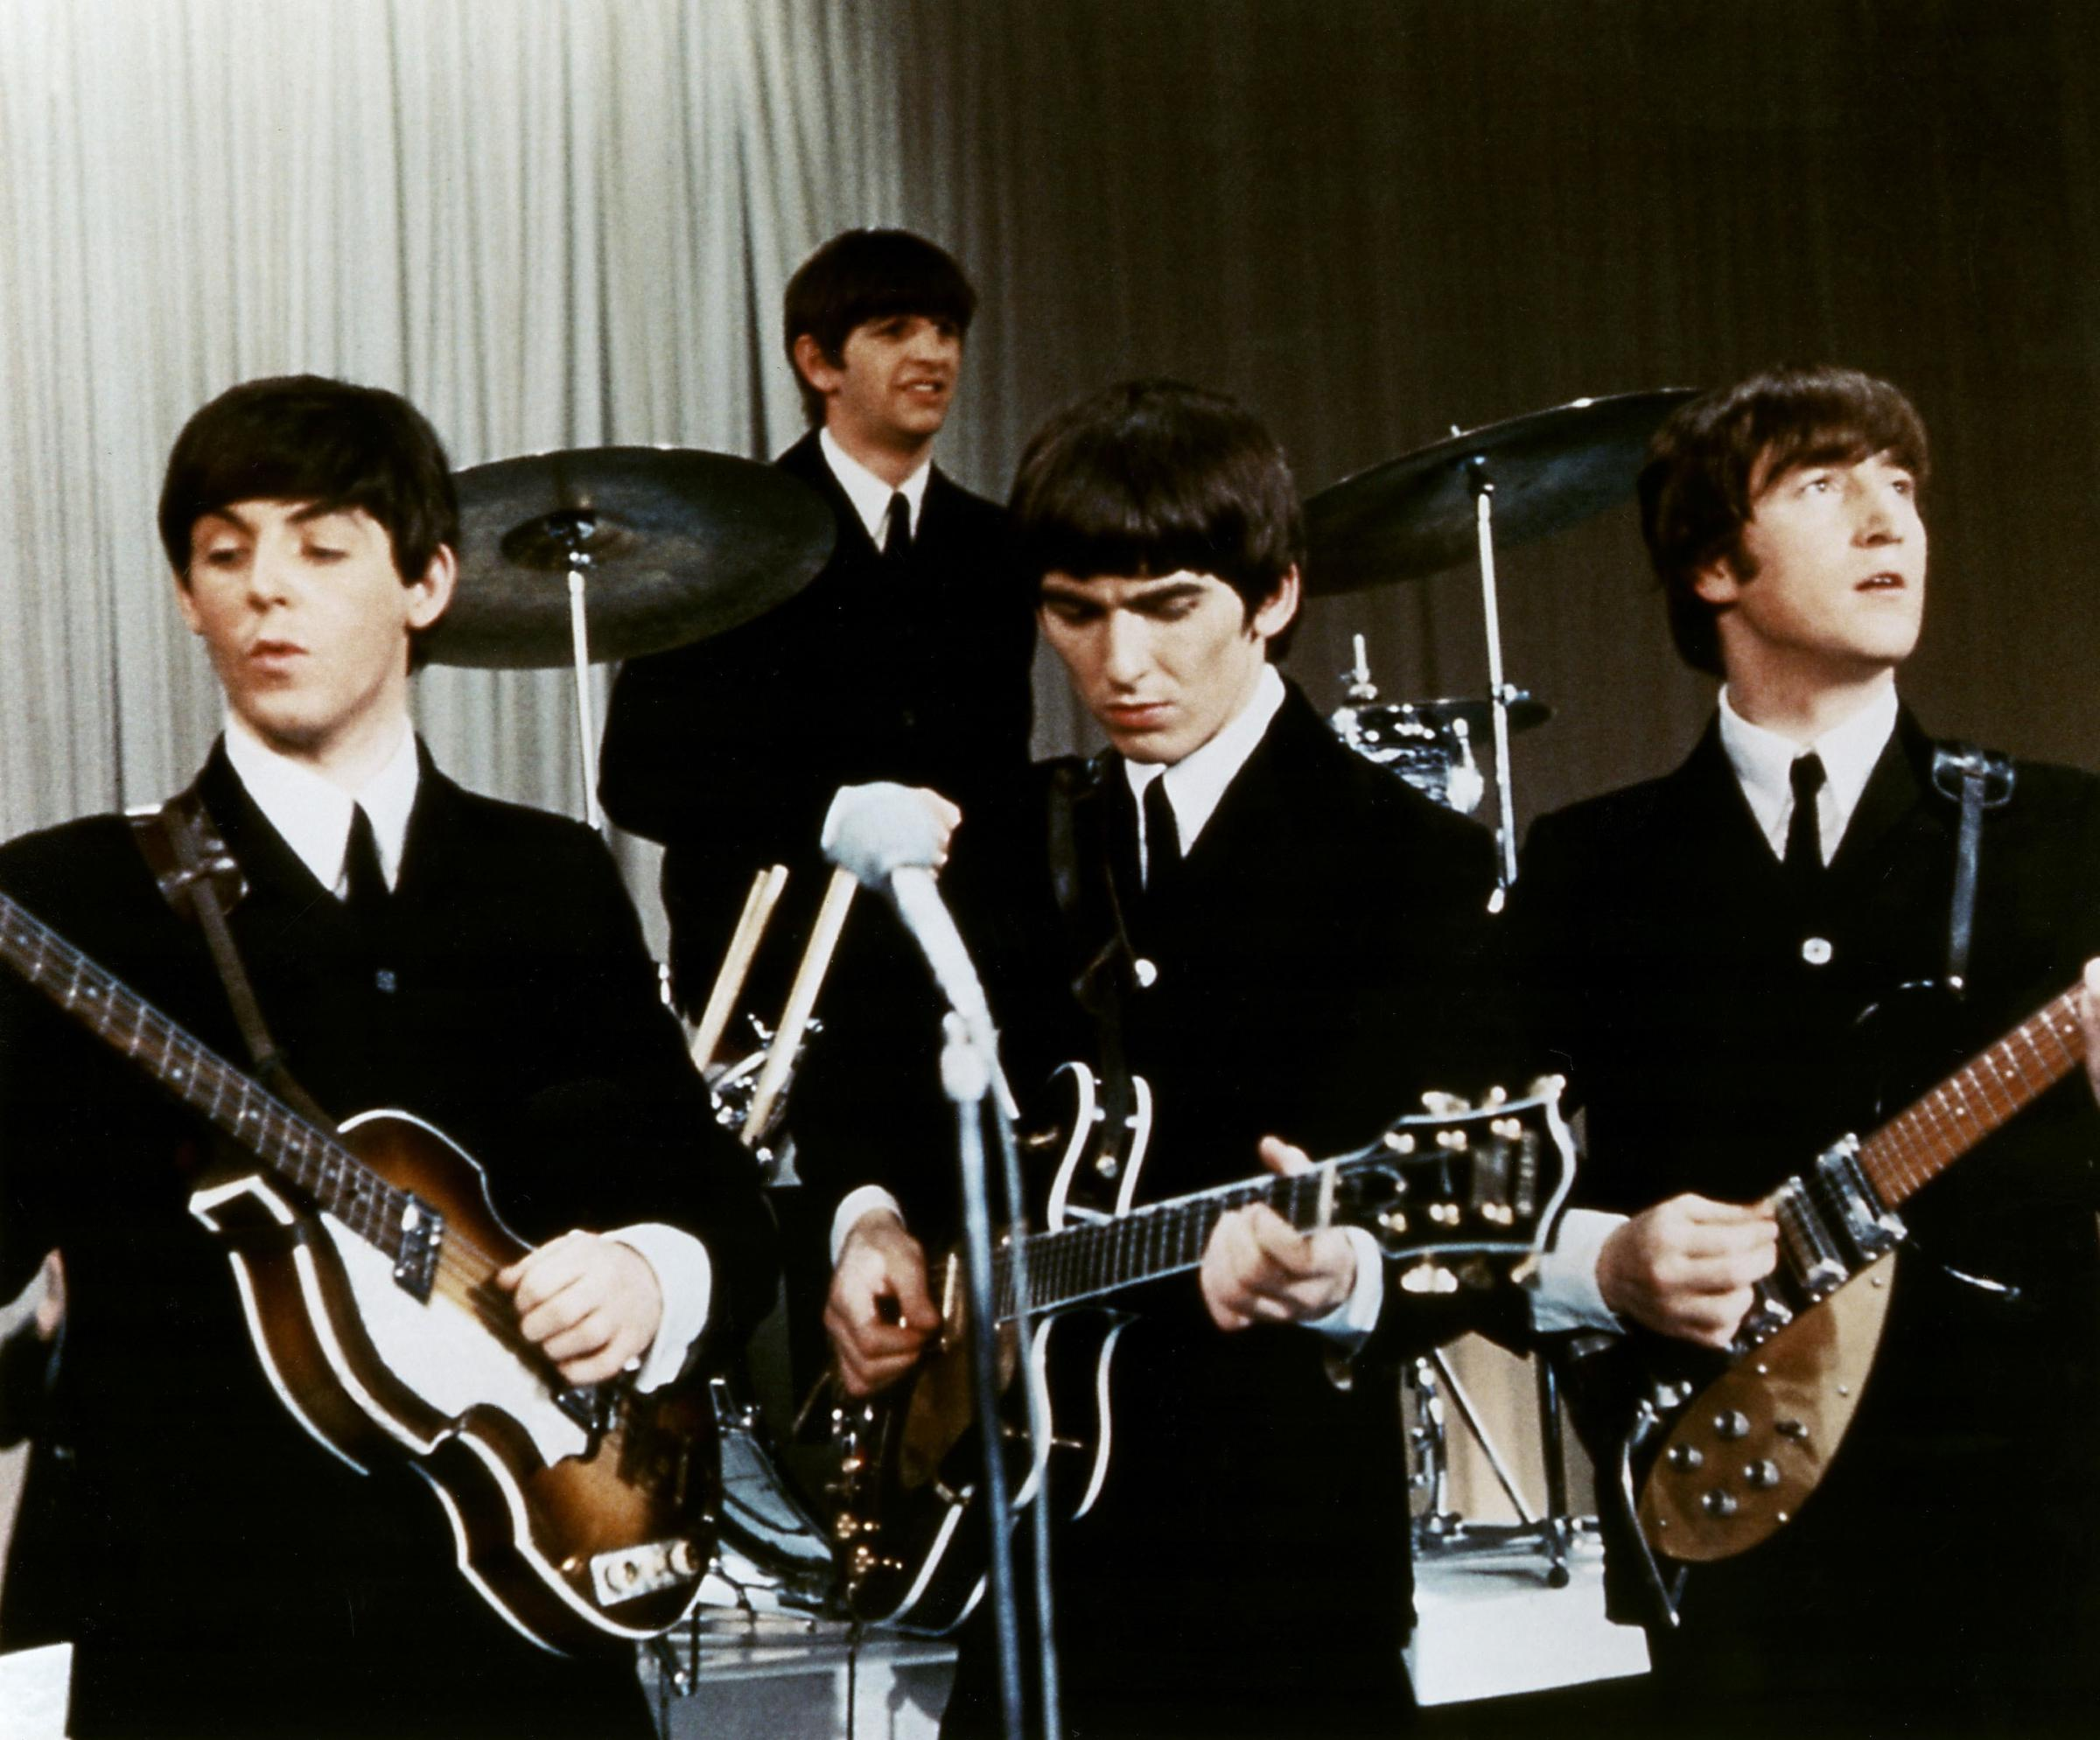 Teddy Jamieson: Do we need another Beatles book? Probably